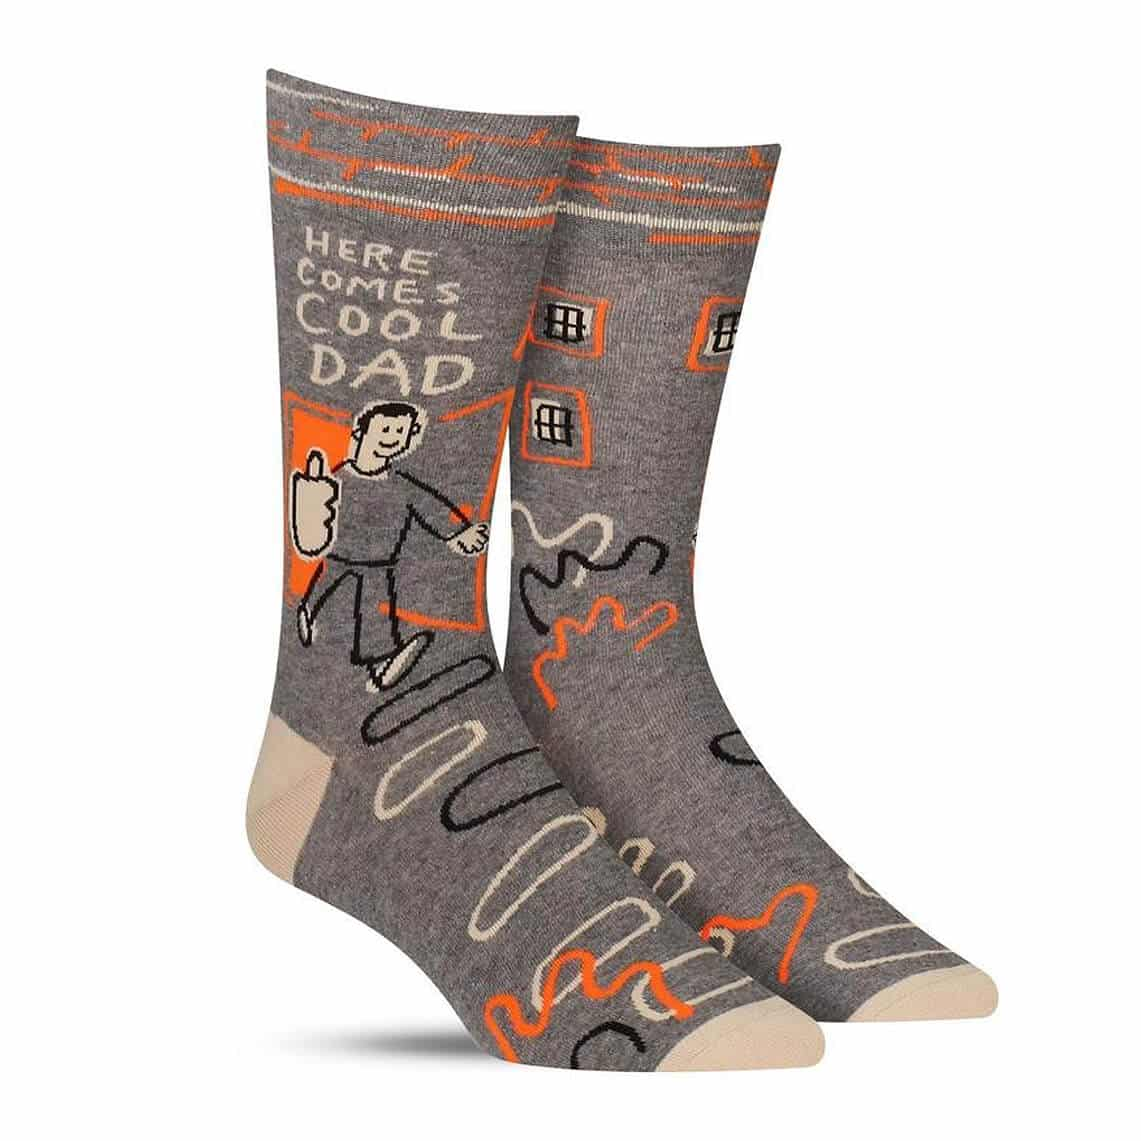 Here Comes Cool Dad Socks